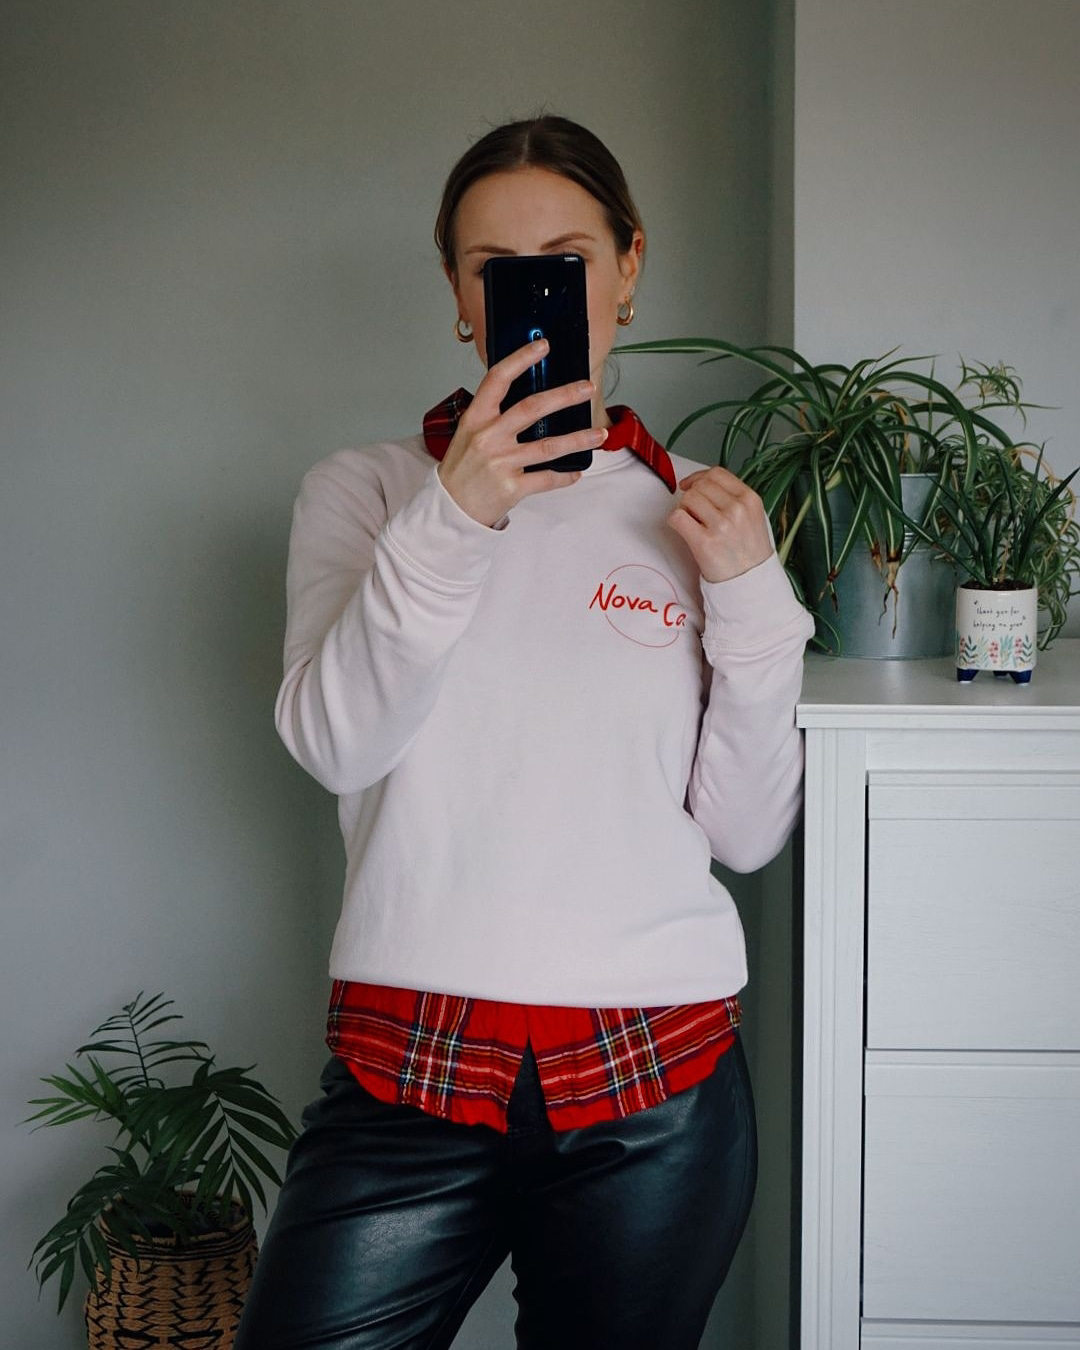 Amy is wearing a pink sweatshirt over a tartan shirt with black pleather trousers